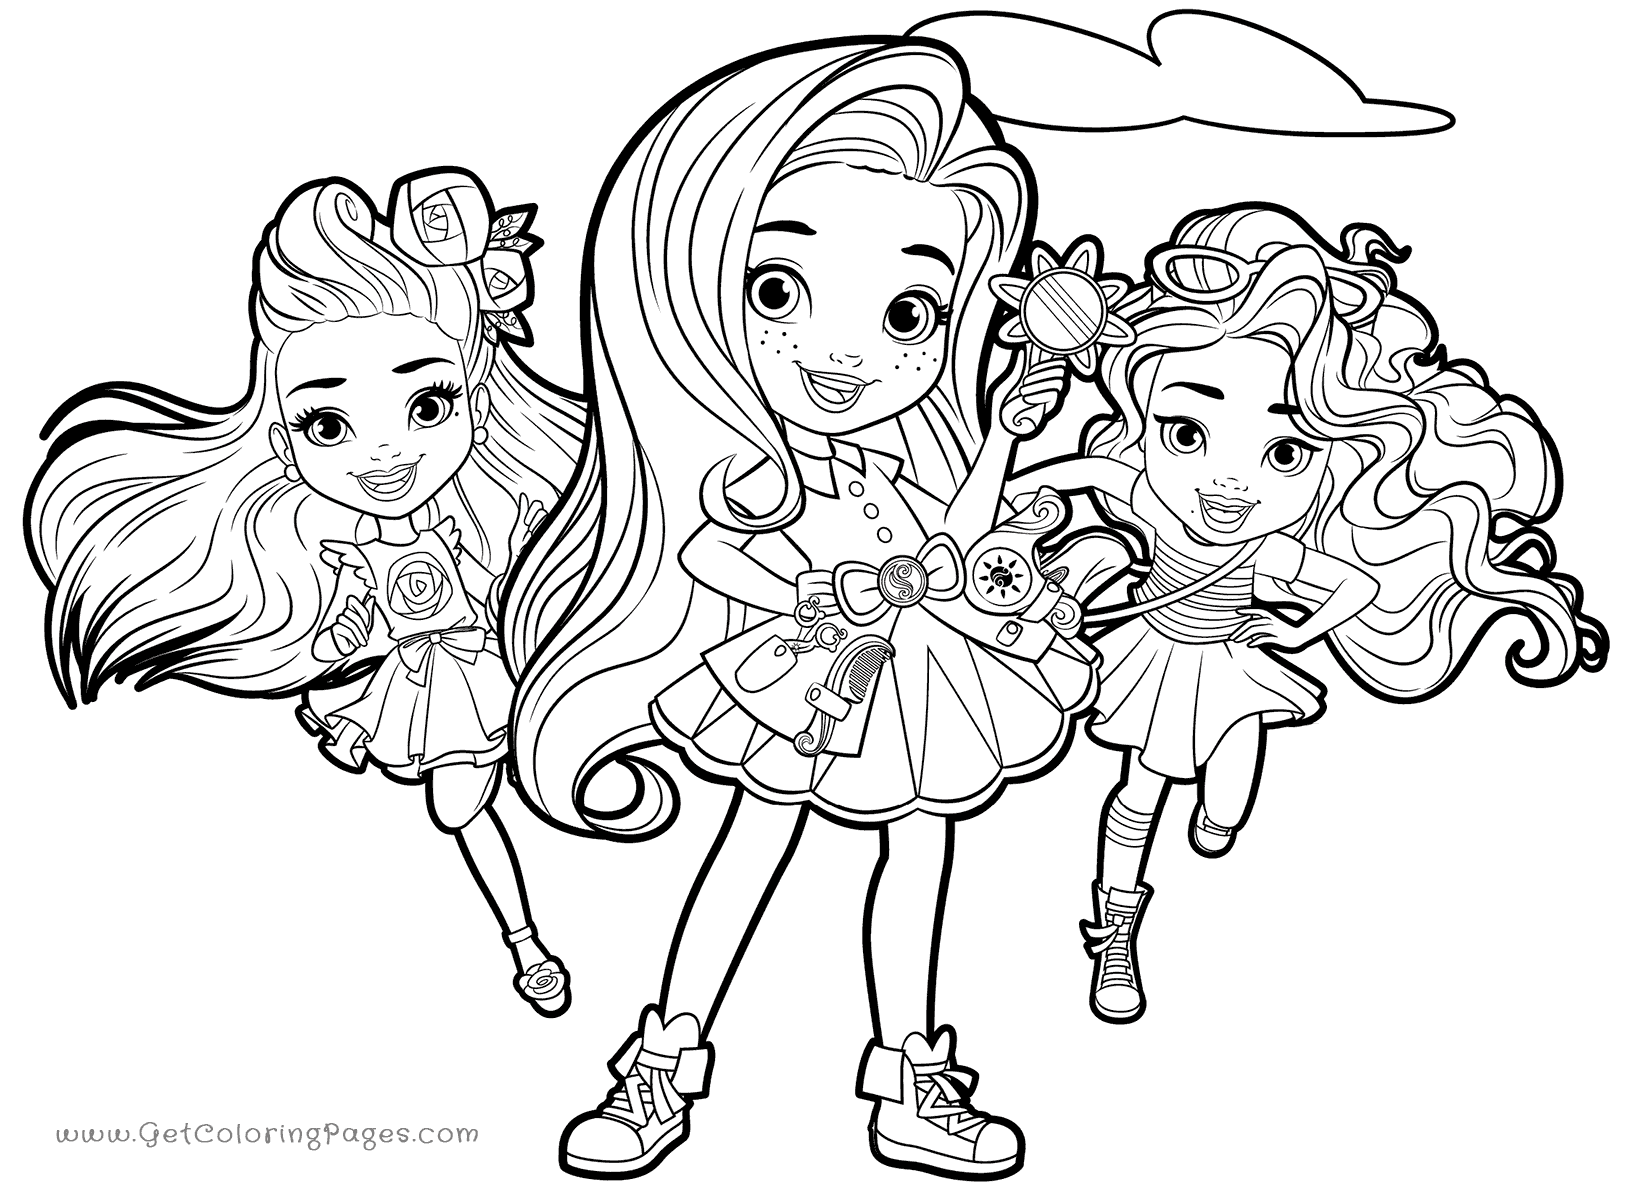 1640x1200 Nickelodeon Sunny Day Coloring Pages